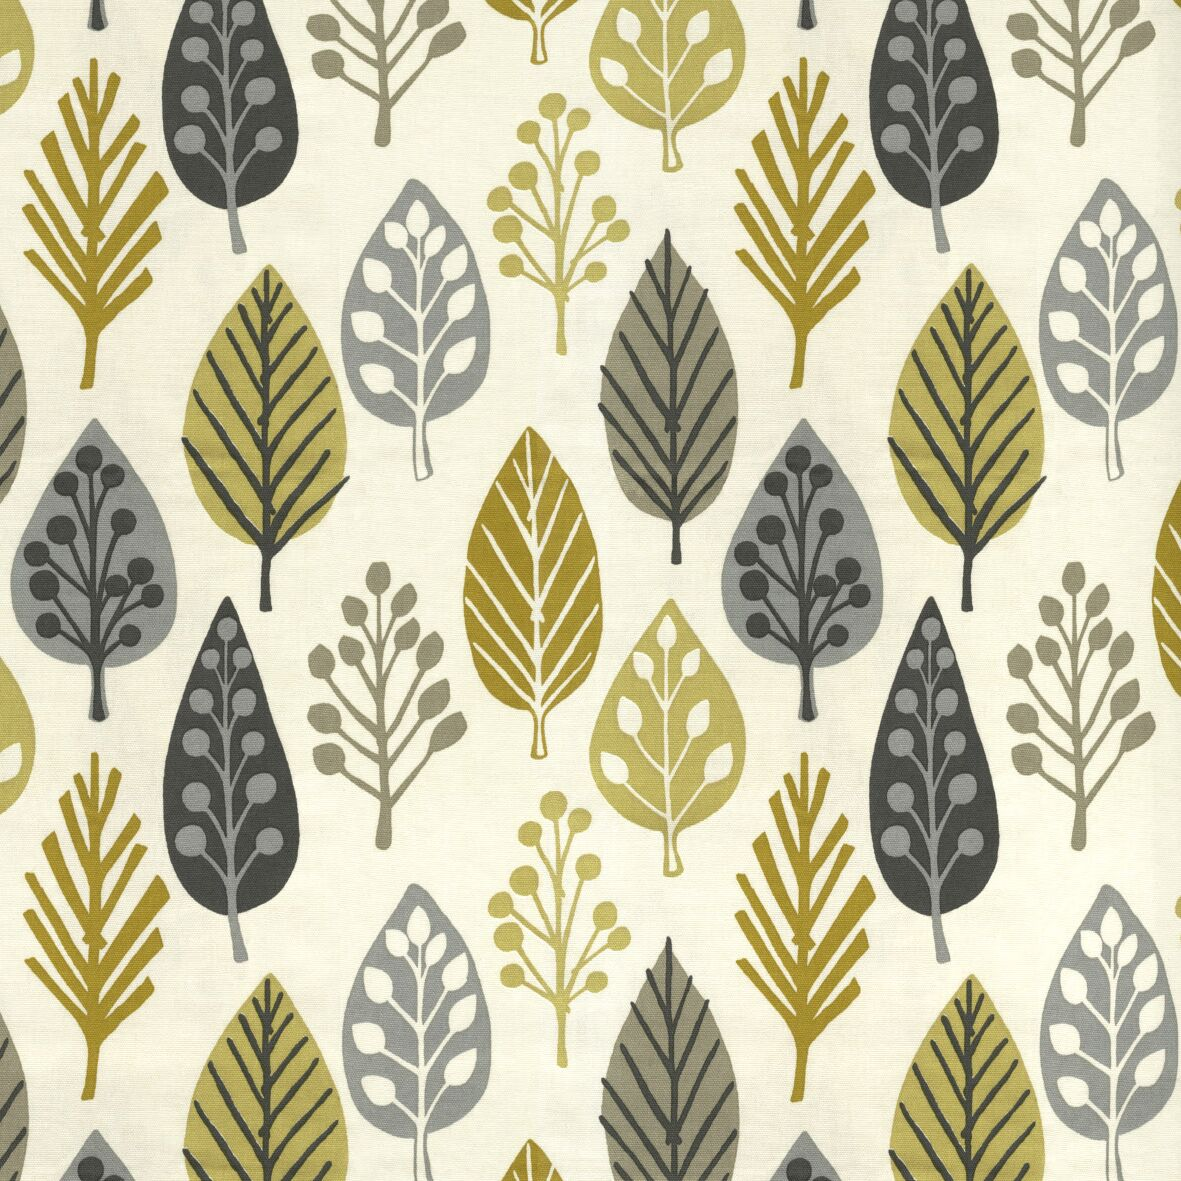 McAlister Textiles Magda Cotton Print Ochre Yellow Roman Blind Roman Blinds